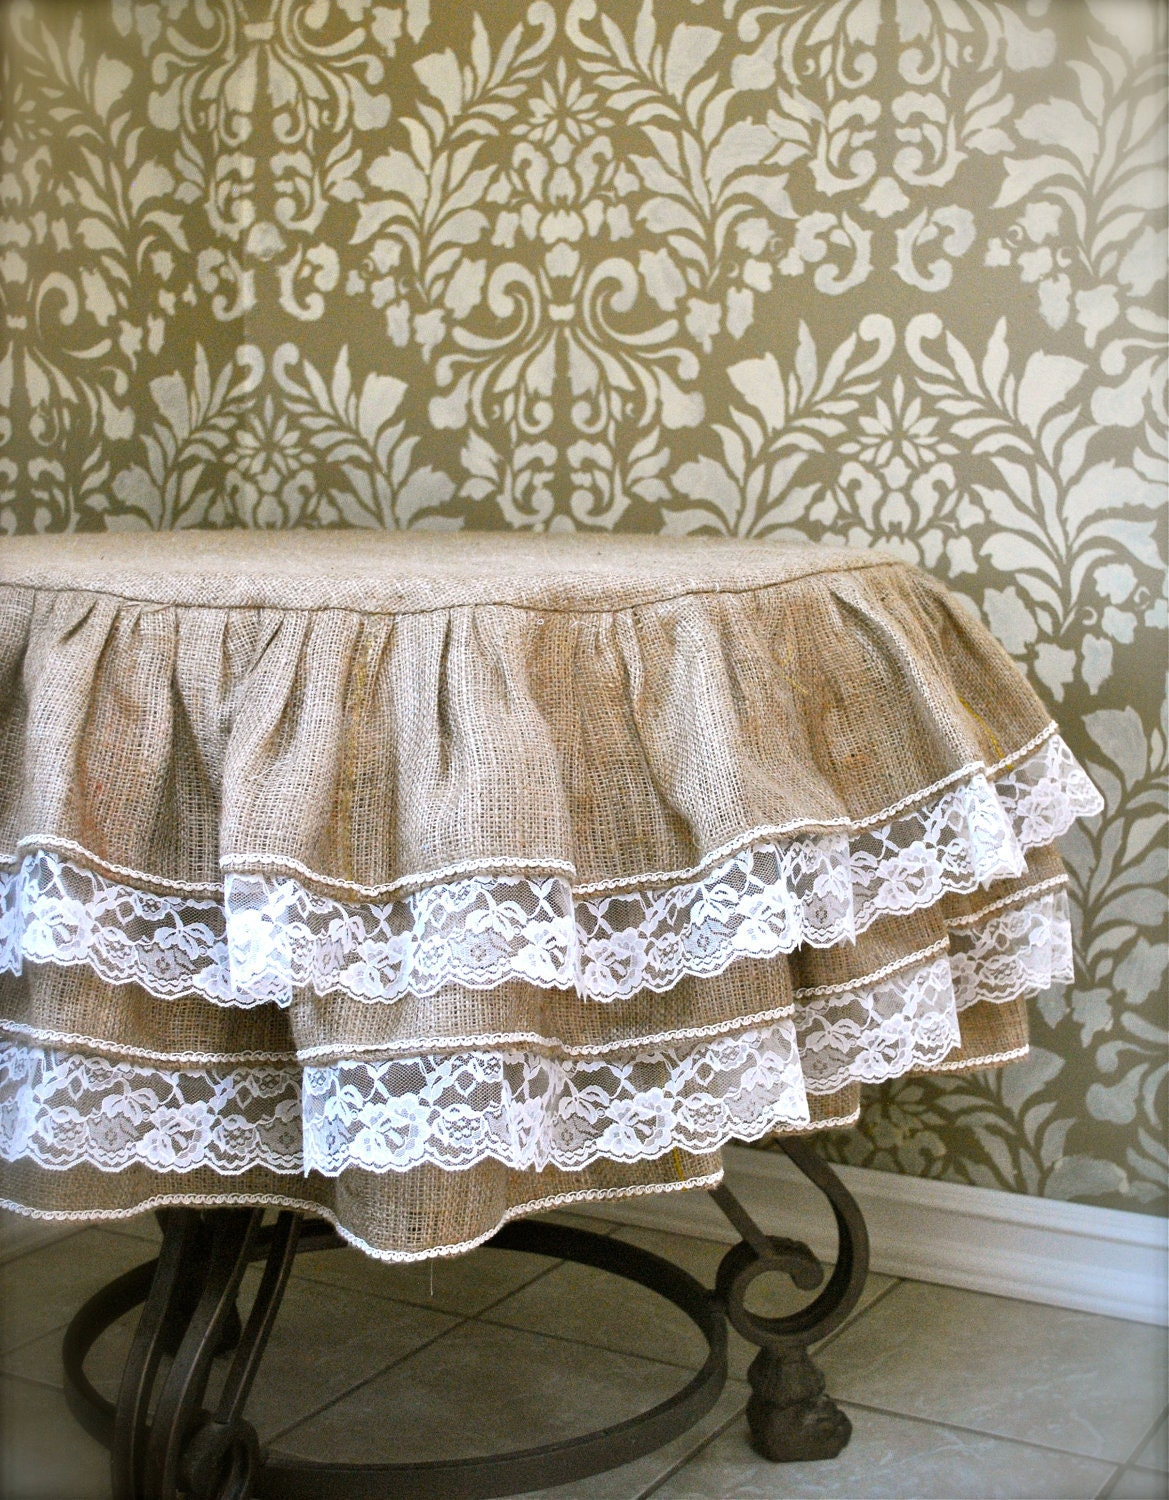 Burlap And Lace Ruffle Tablecloth